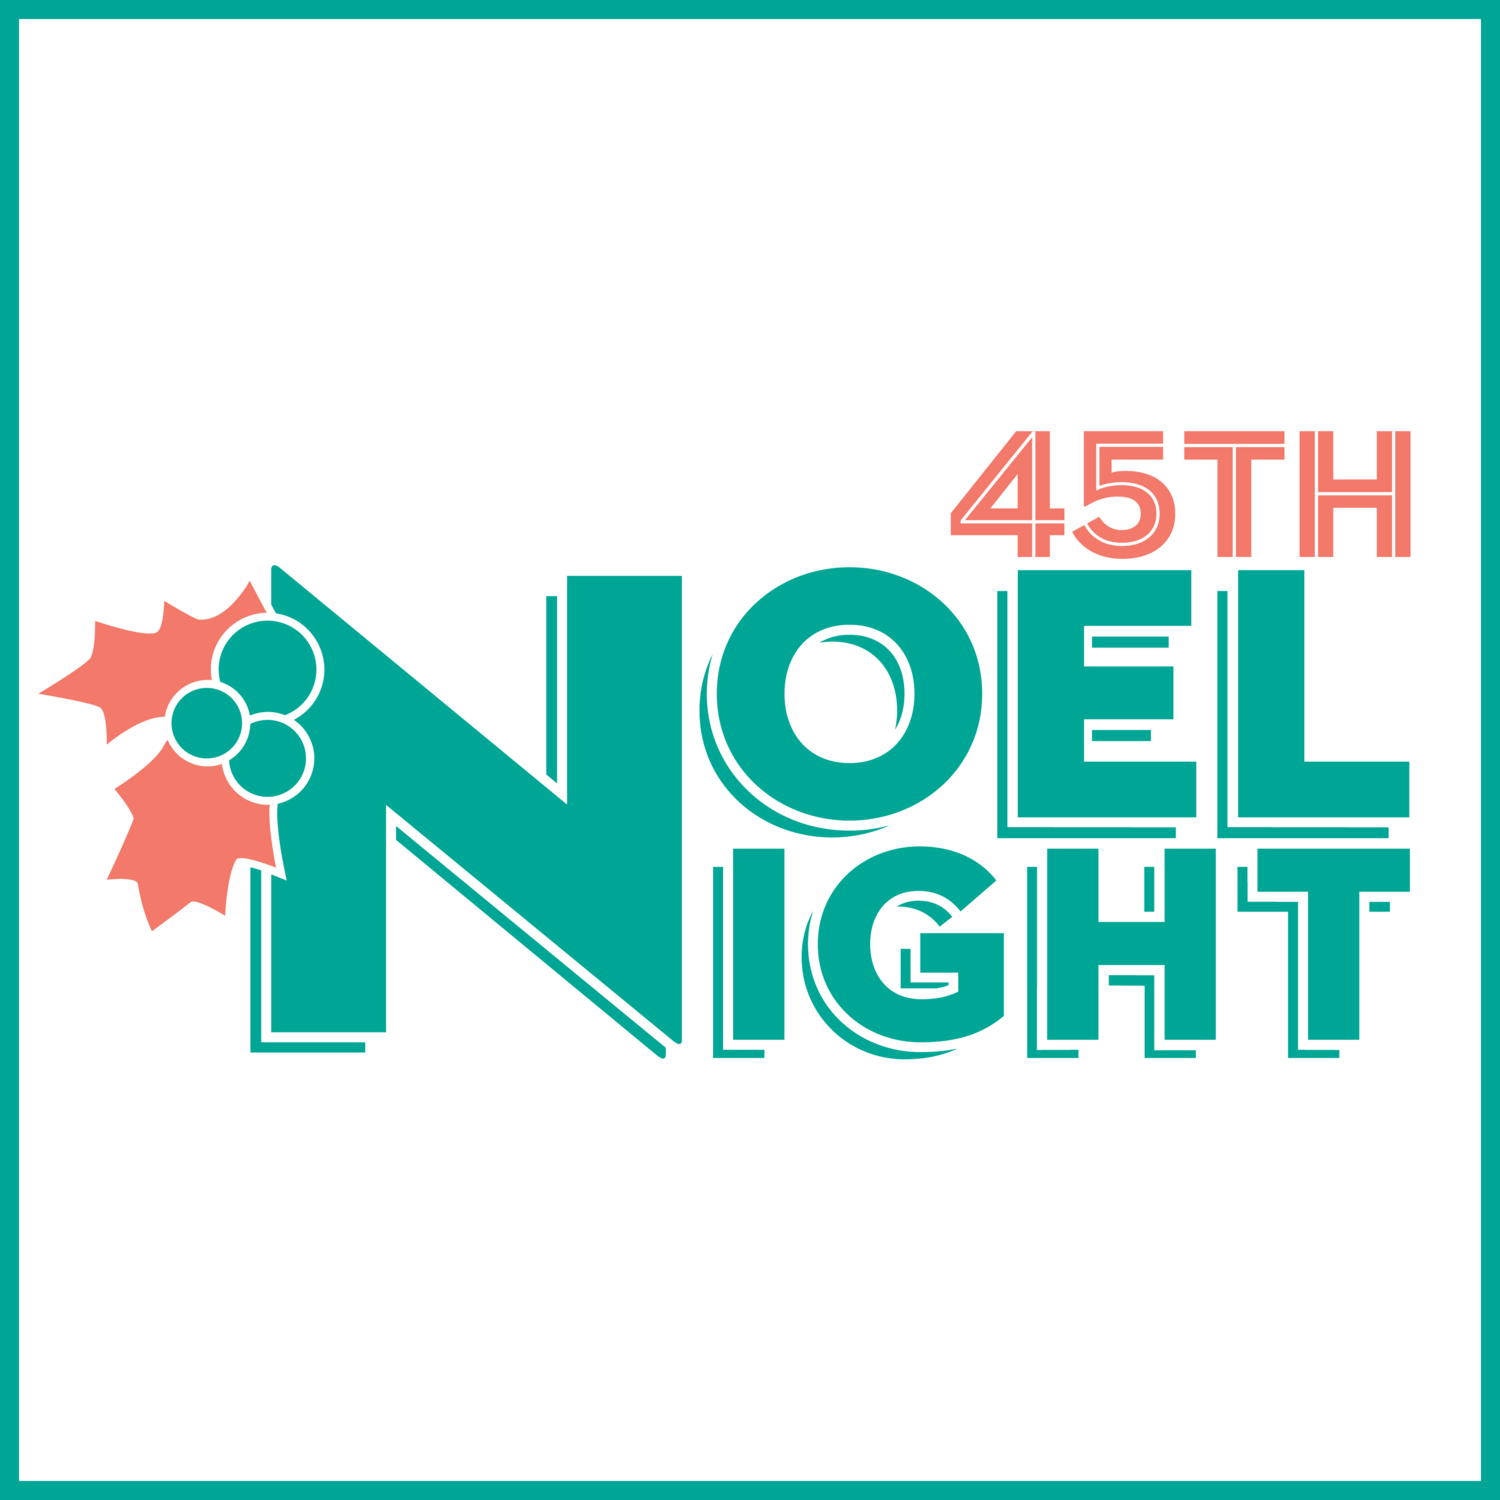 noel night detroit 2018 schedule NOELNIGHT.ORG noel night detroit 2018 schedule